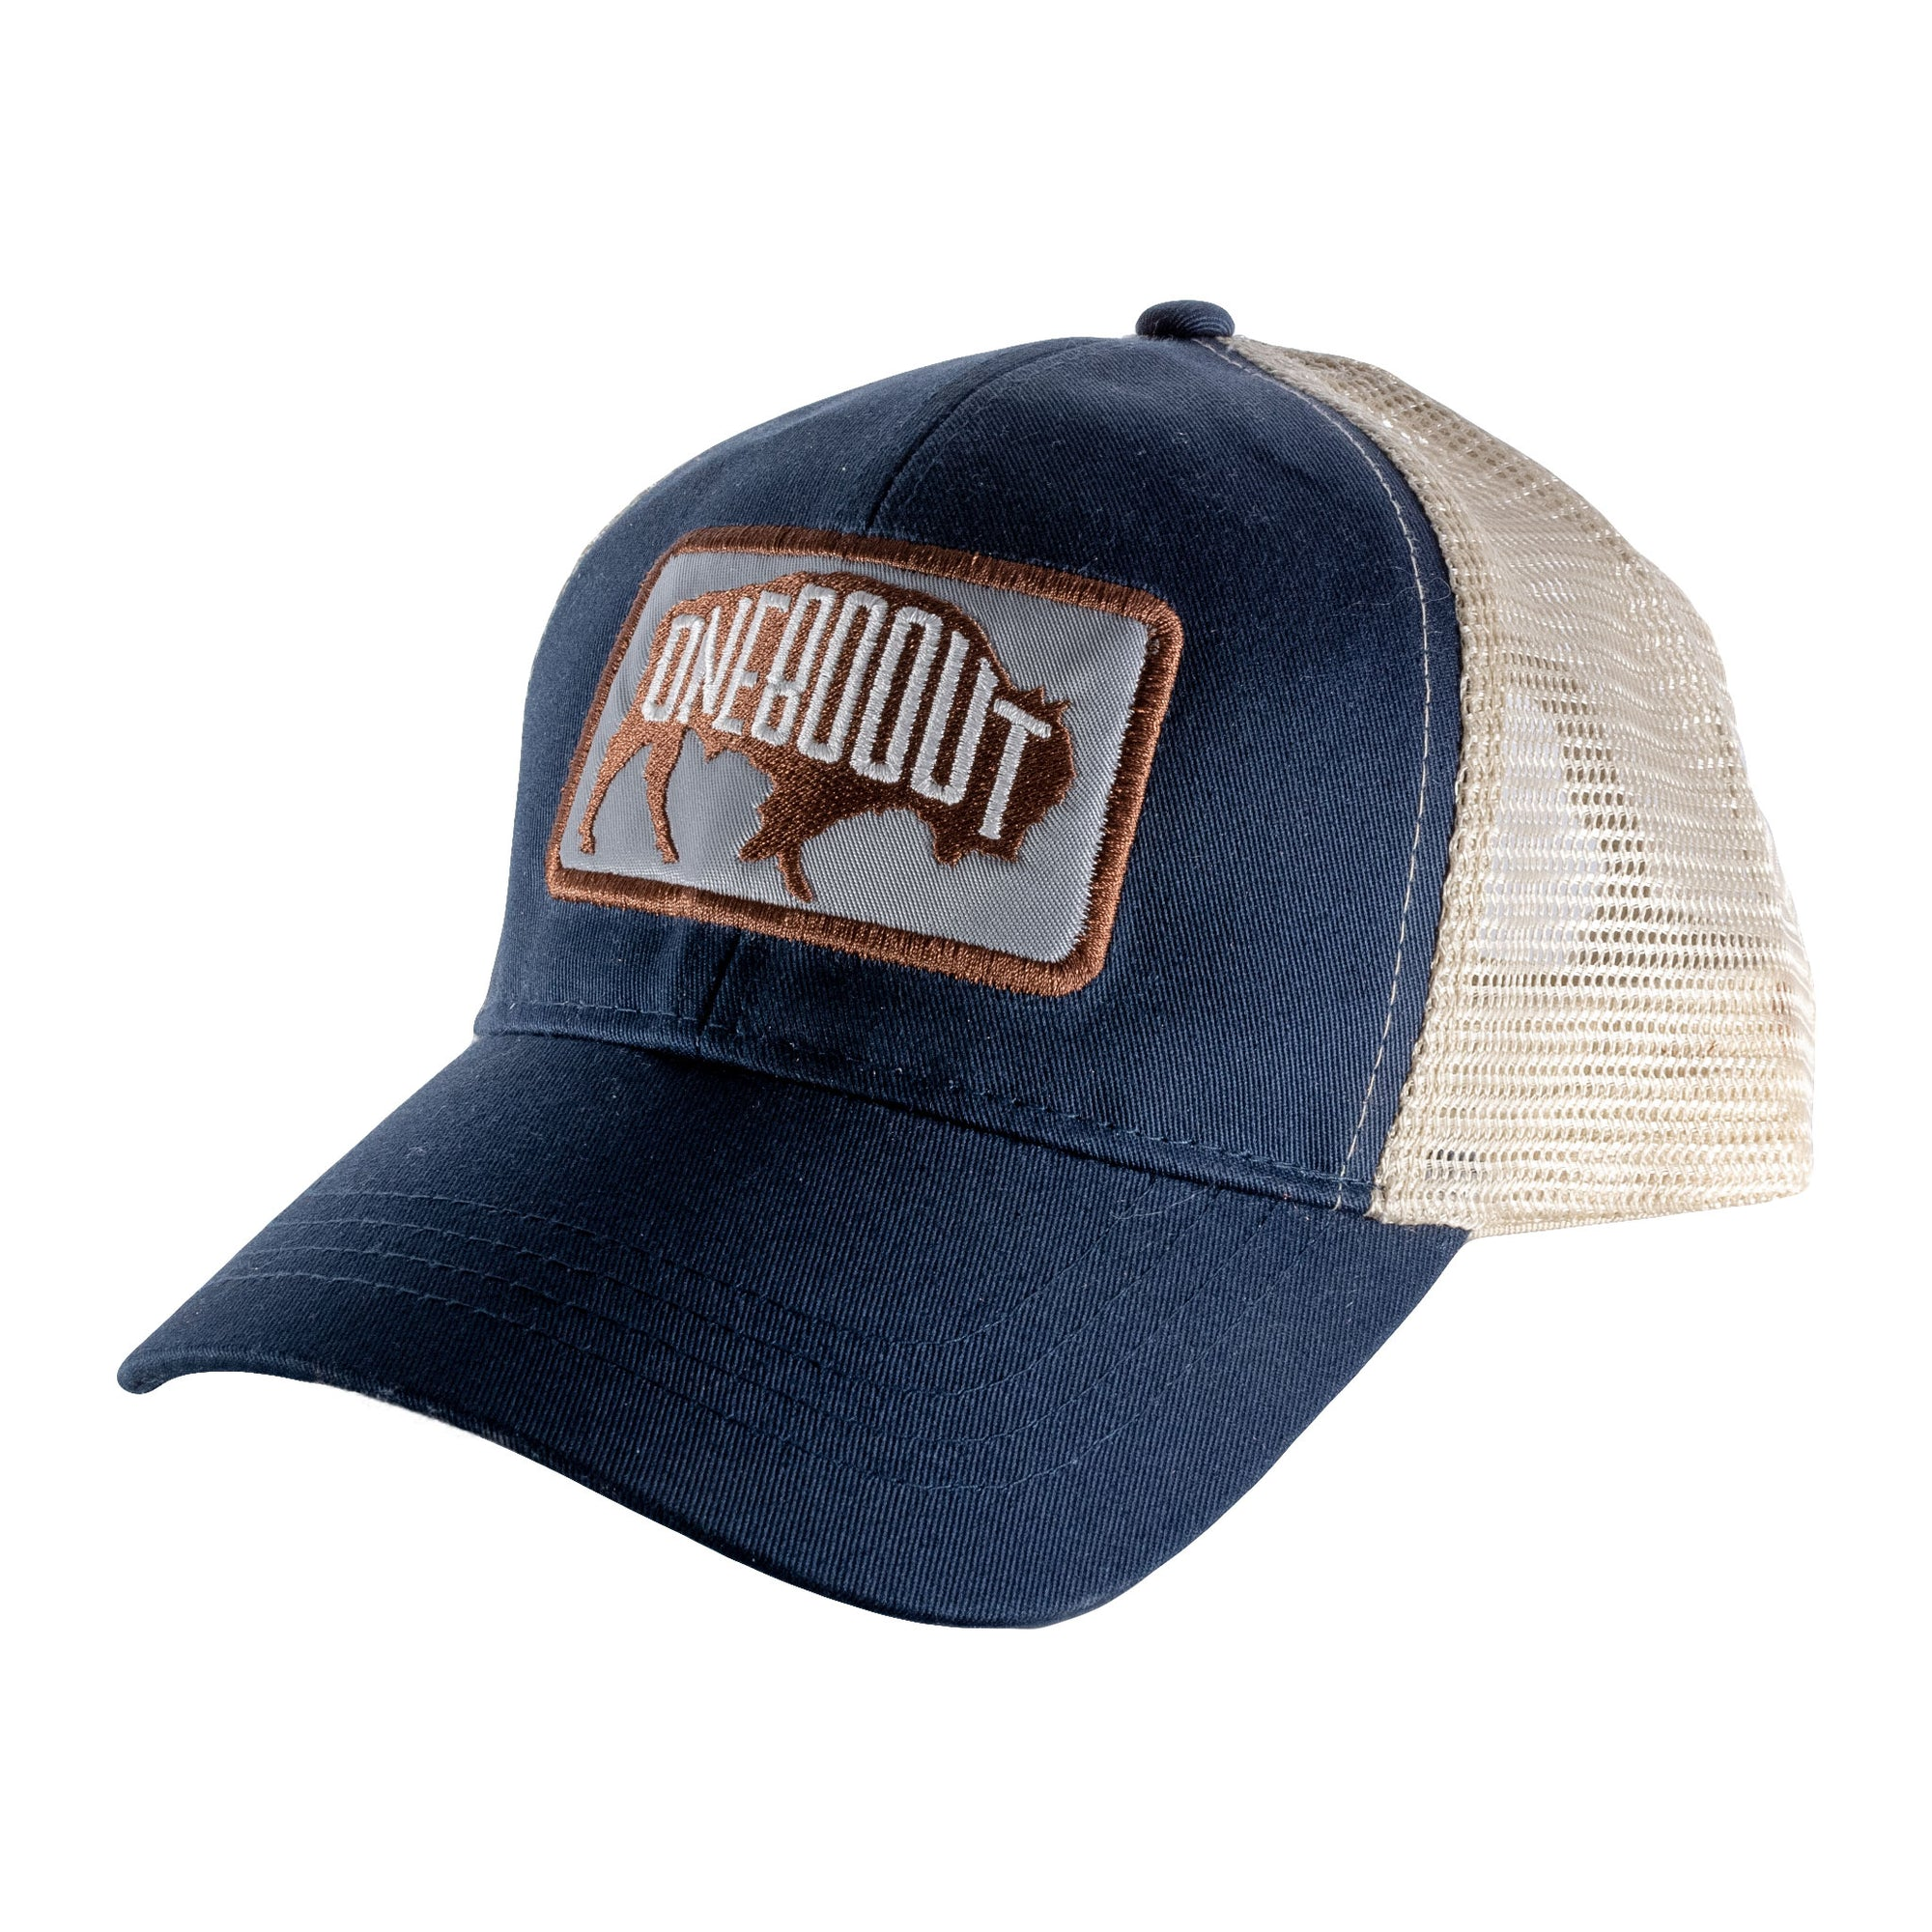 Bison Eco-Friendly Trucker Hat Navy